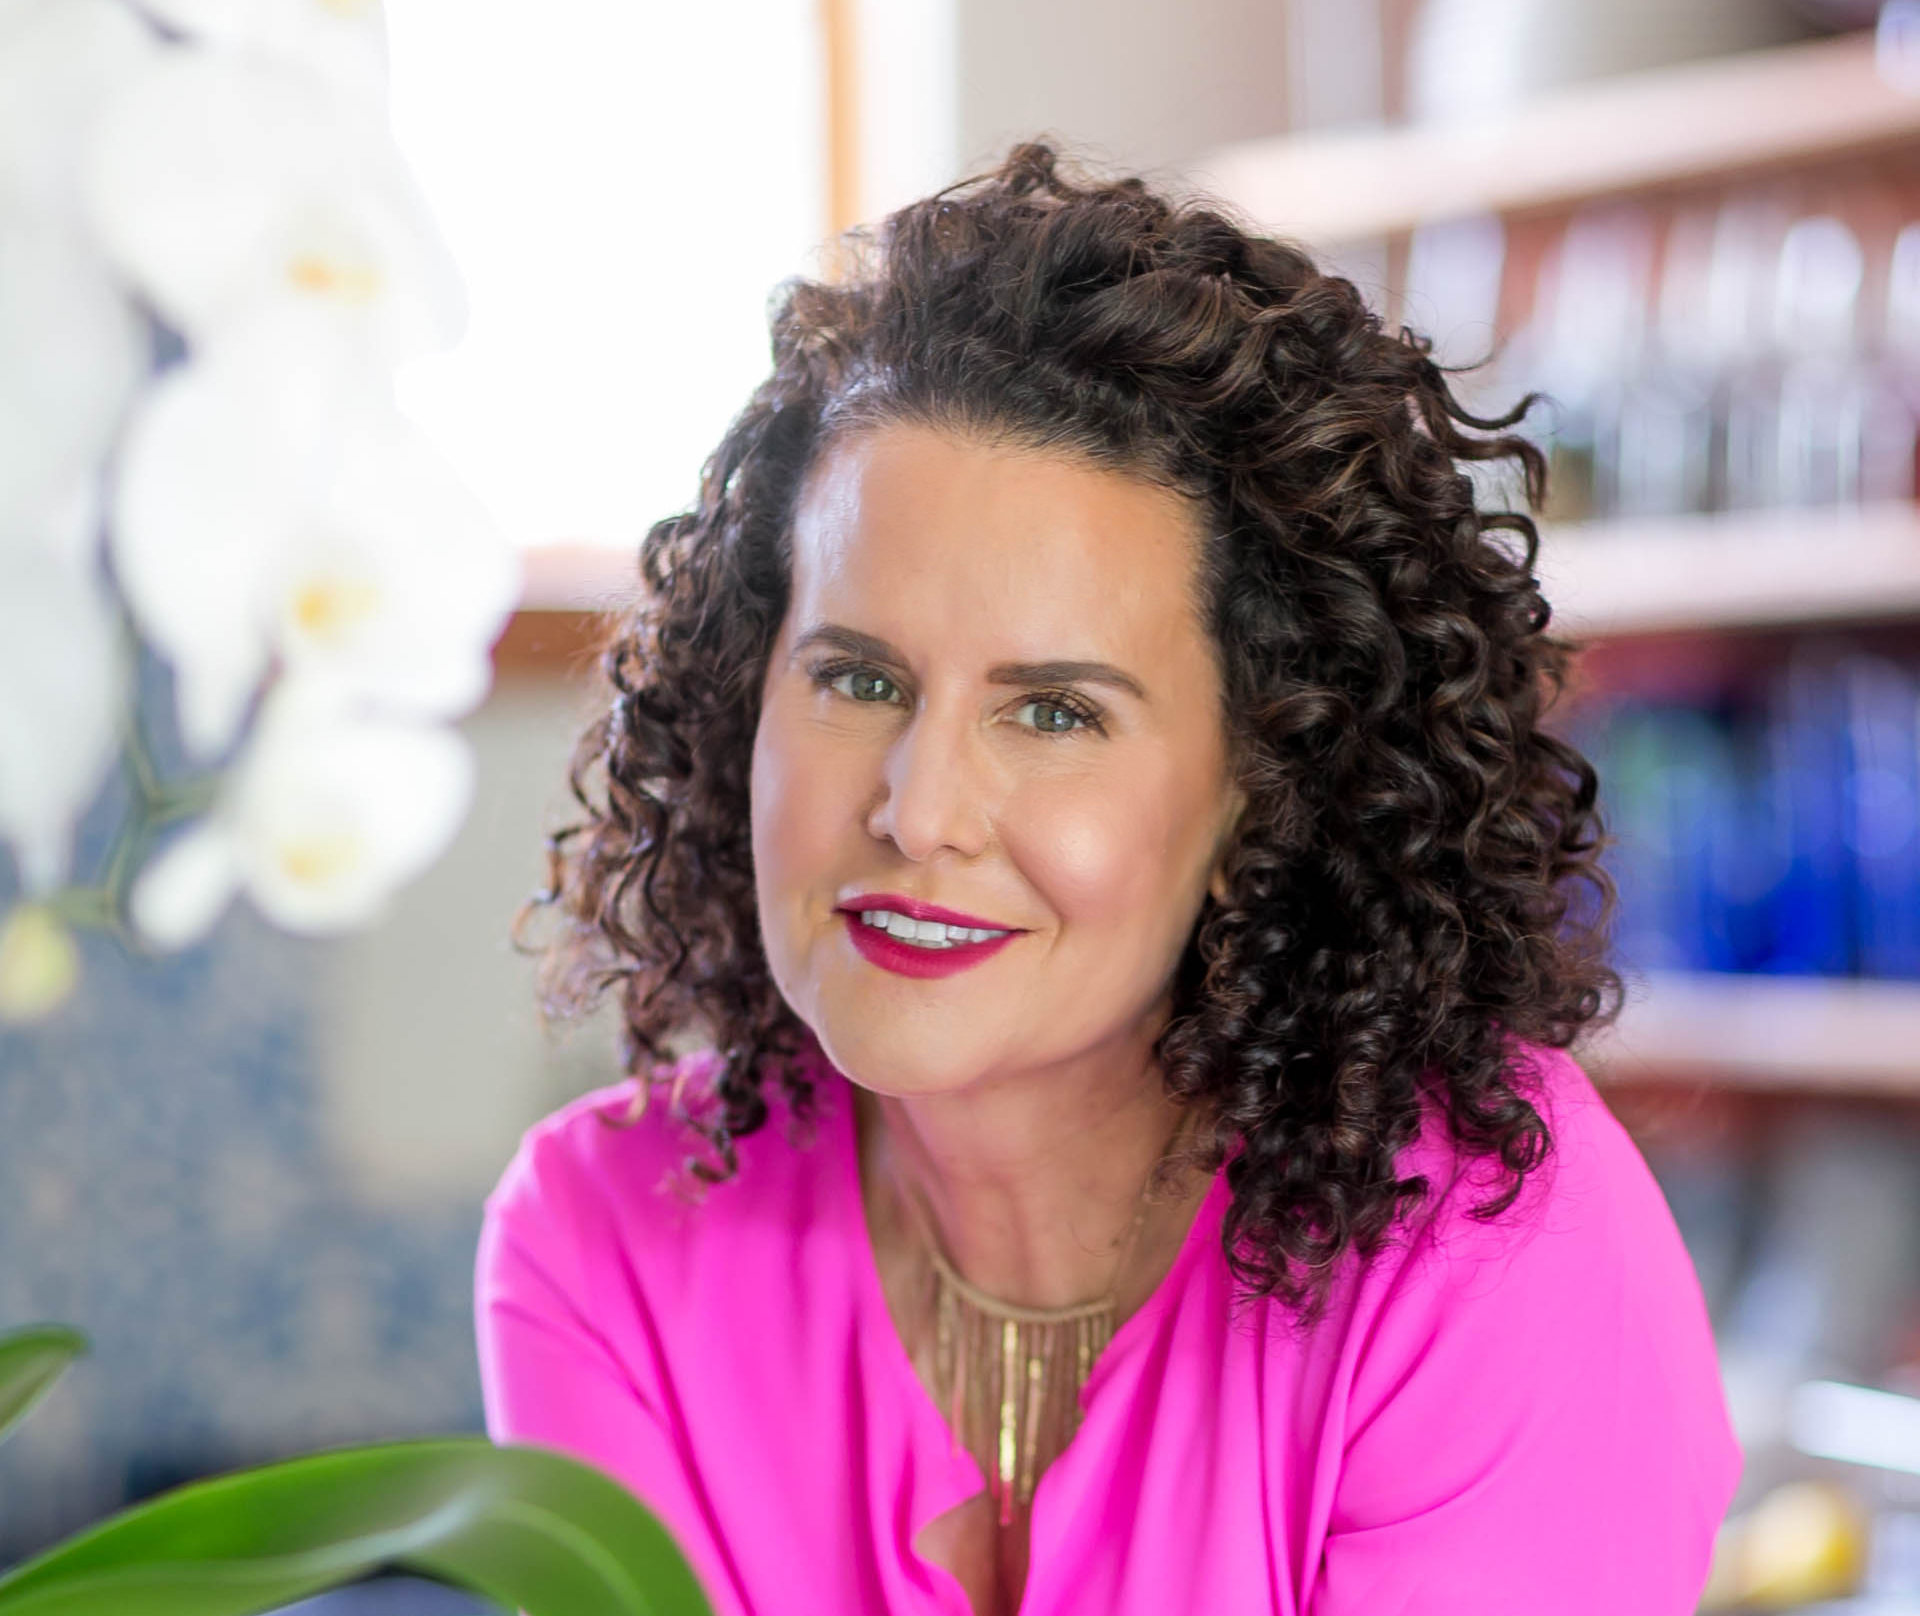 naturally curly founder michelle breyer poses with her dark, curly hair in a hot pink top